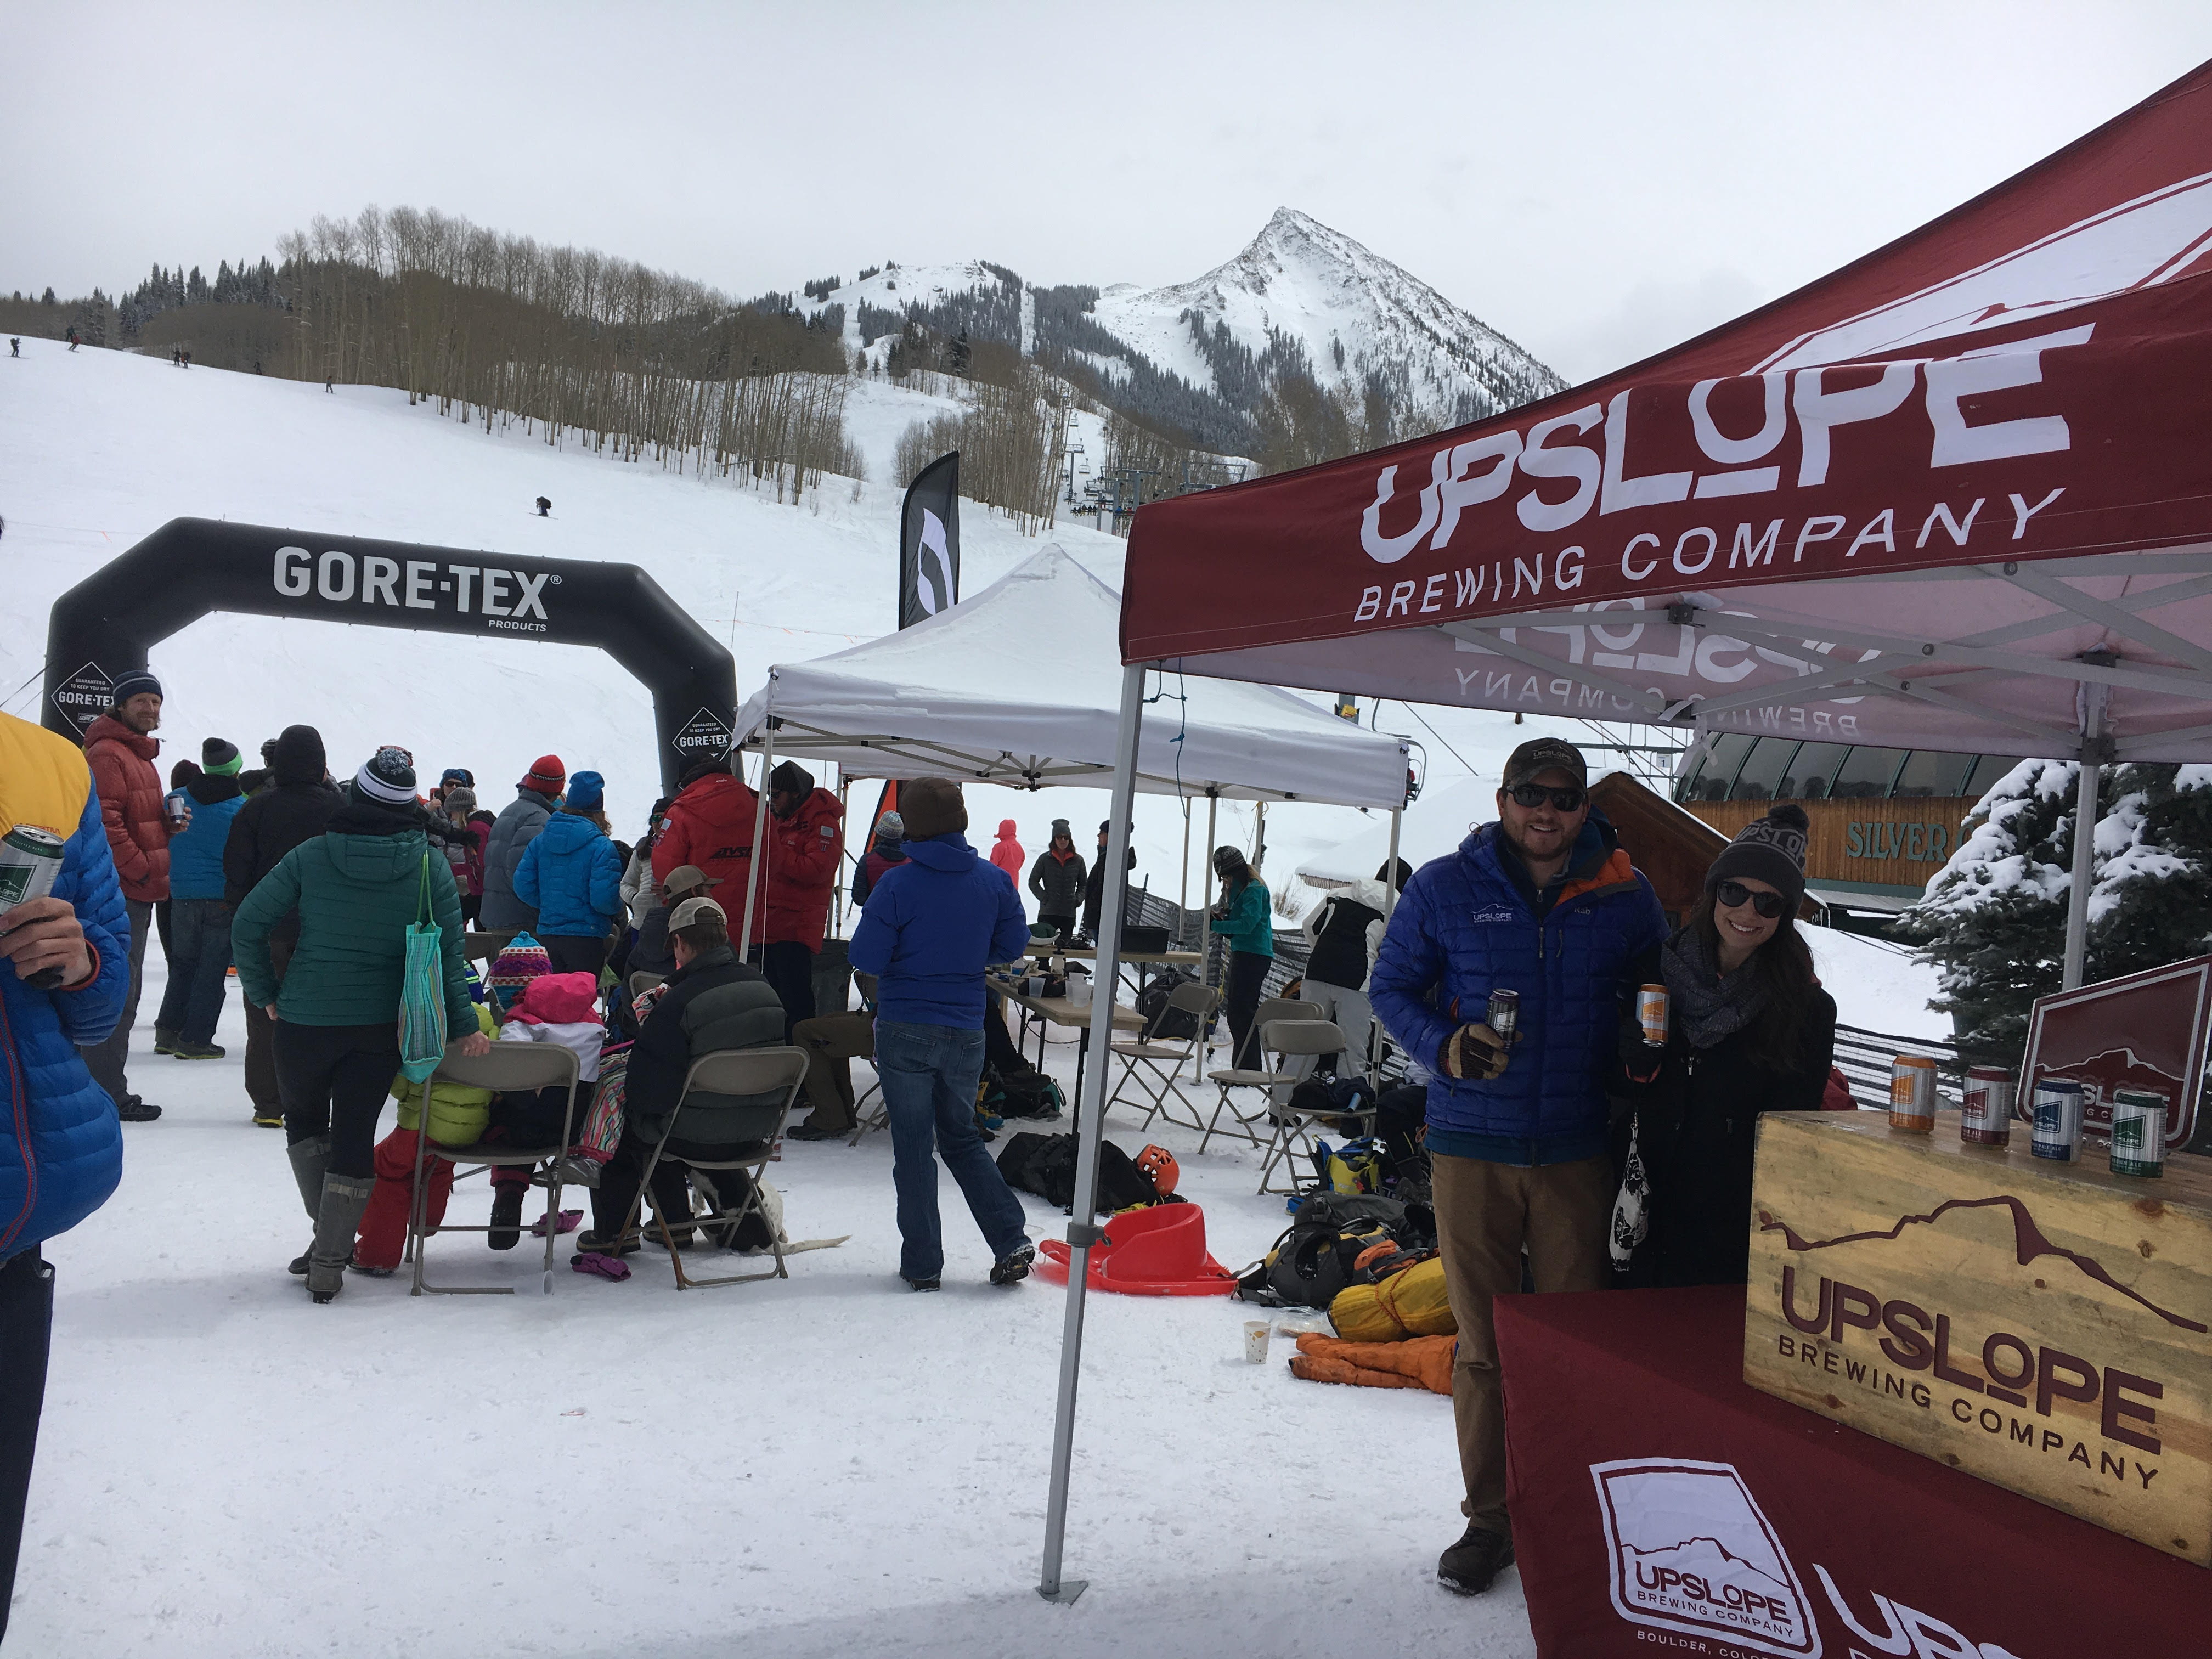 Upslope reps ready to hand out cans at the finish line!